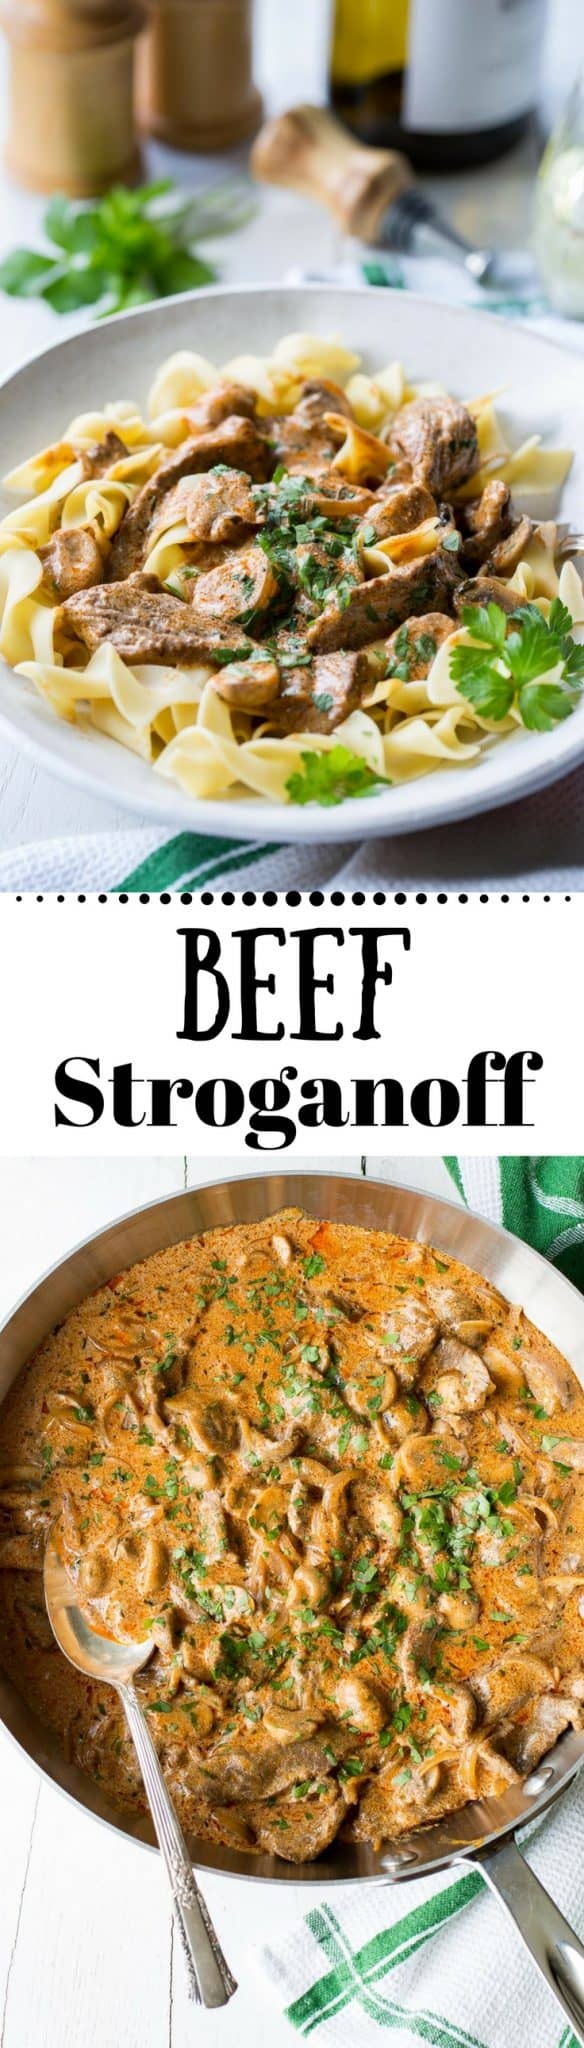 Beef Stroganoff Recipe - tender, quick-cooked strips of sirloin beef, sliced shallots, mushrooms and paprika are simmered in a flavorful sauce made of beef broth, dry white wine and sour cream. Serve over egg noodles, mashed potatoes or rice for an easy company worthy dish that comes together in under an hour. www.savingdessert.com